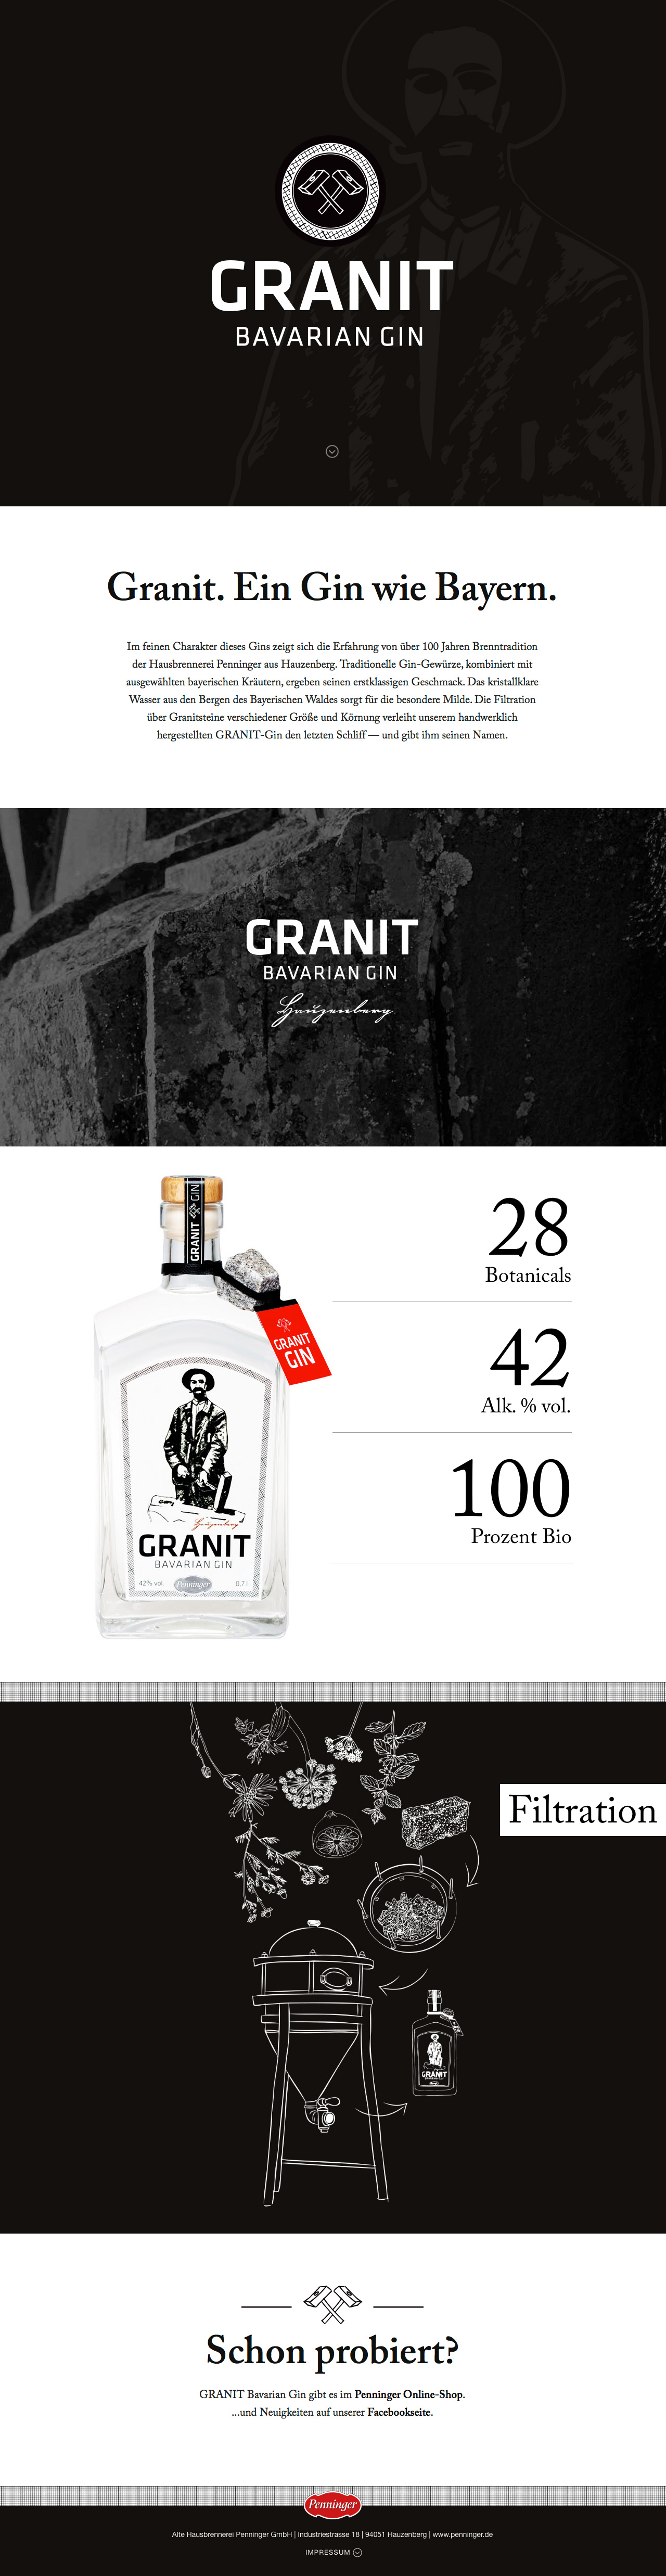 Granit Bavarian Gin Website Screenshot